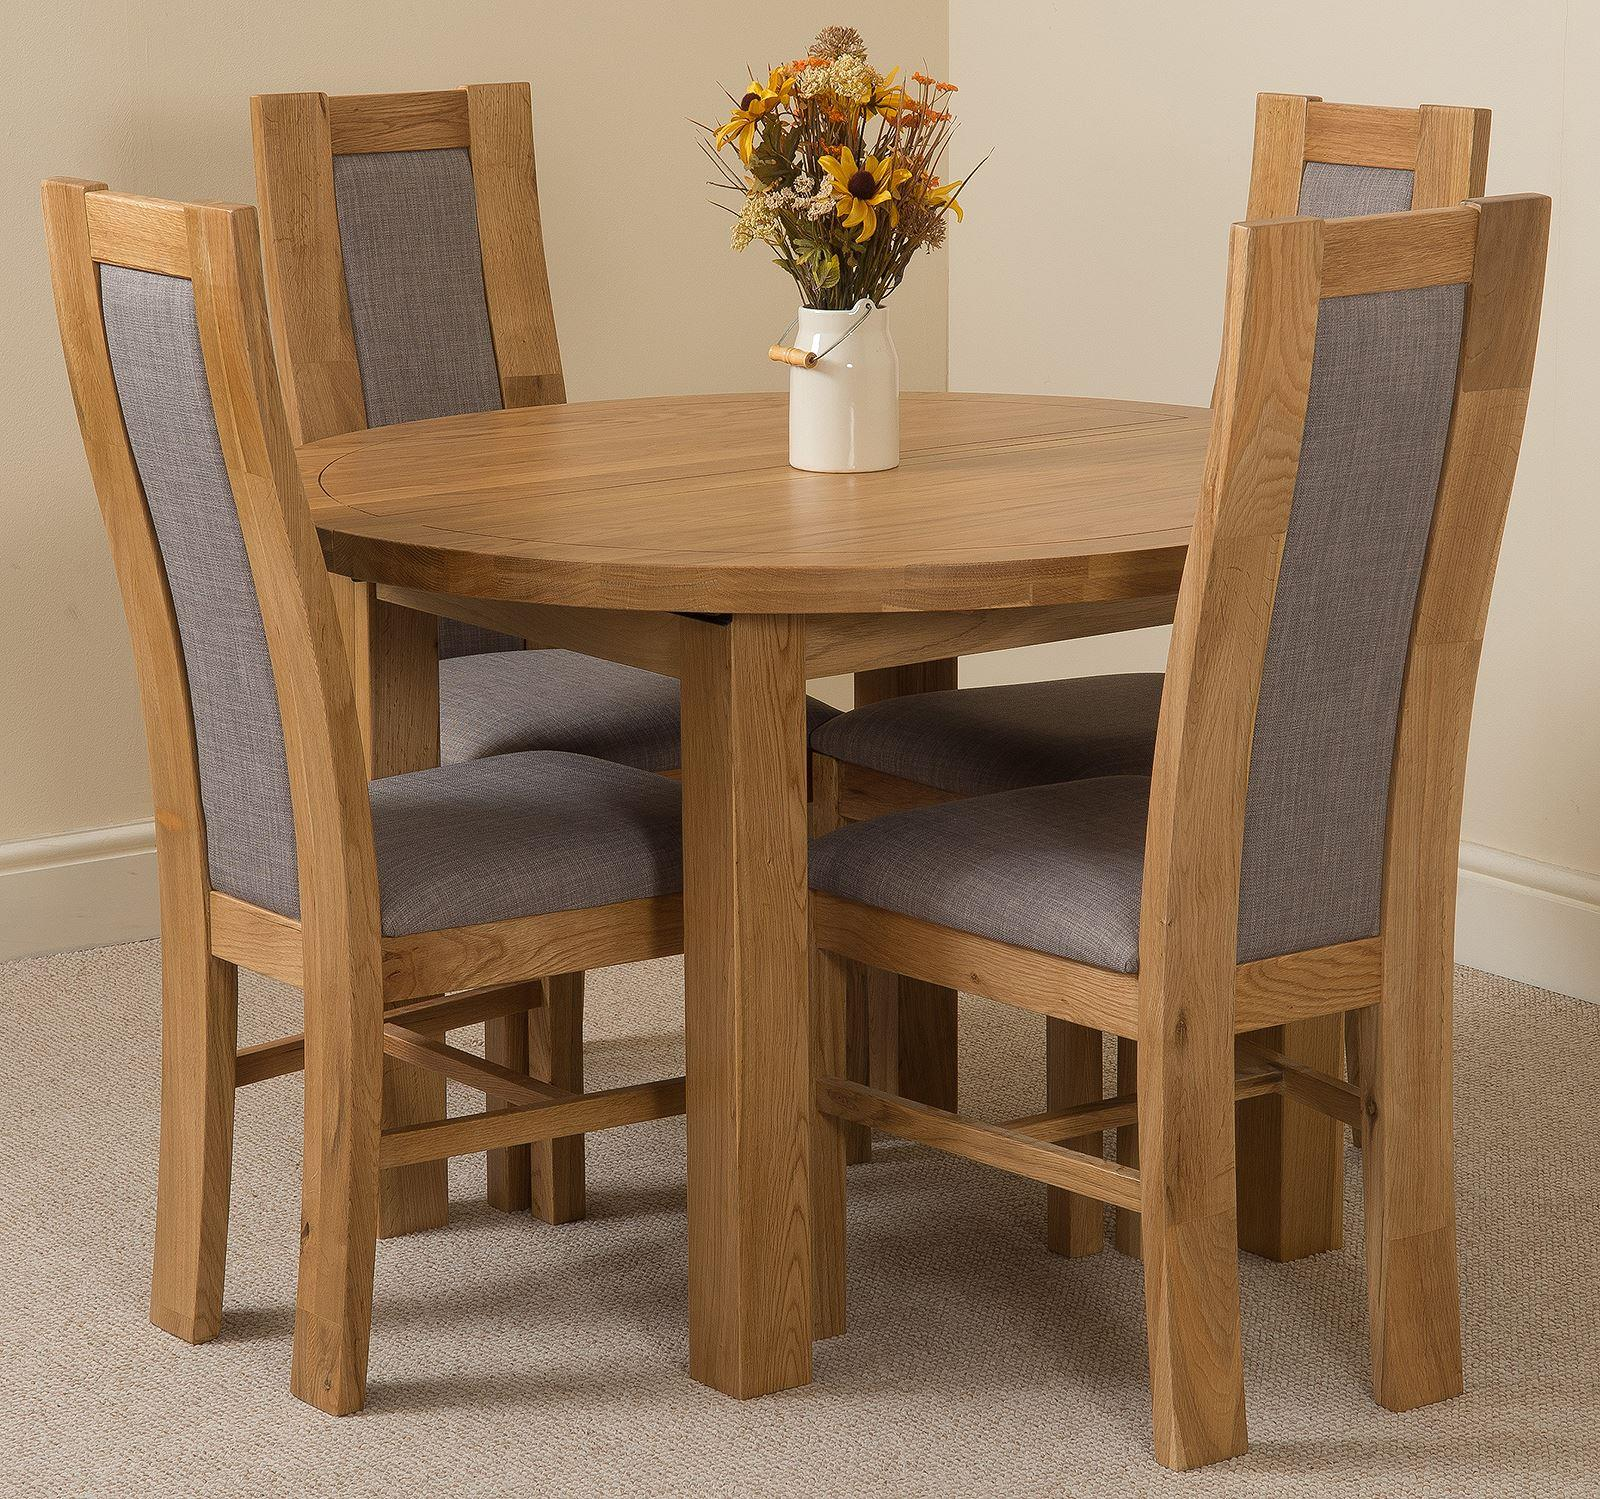 Edmonton Oak Extending Round Dining Table & 4 Stanford Solid Oak Fabric Chairs